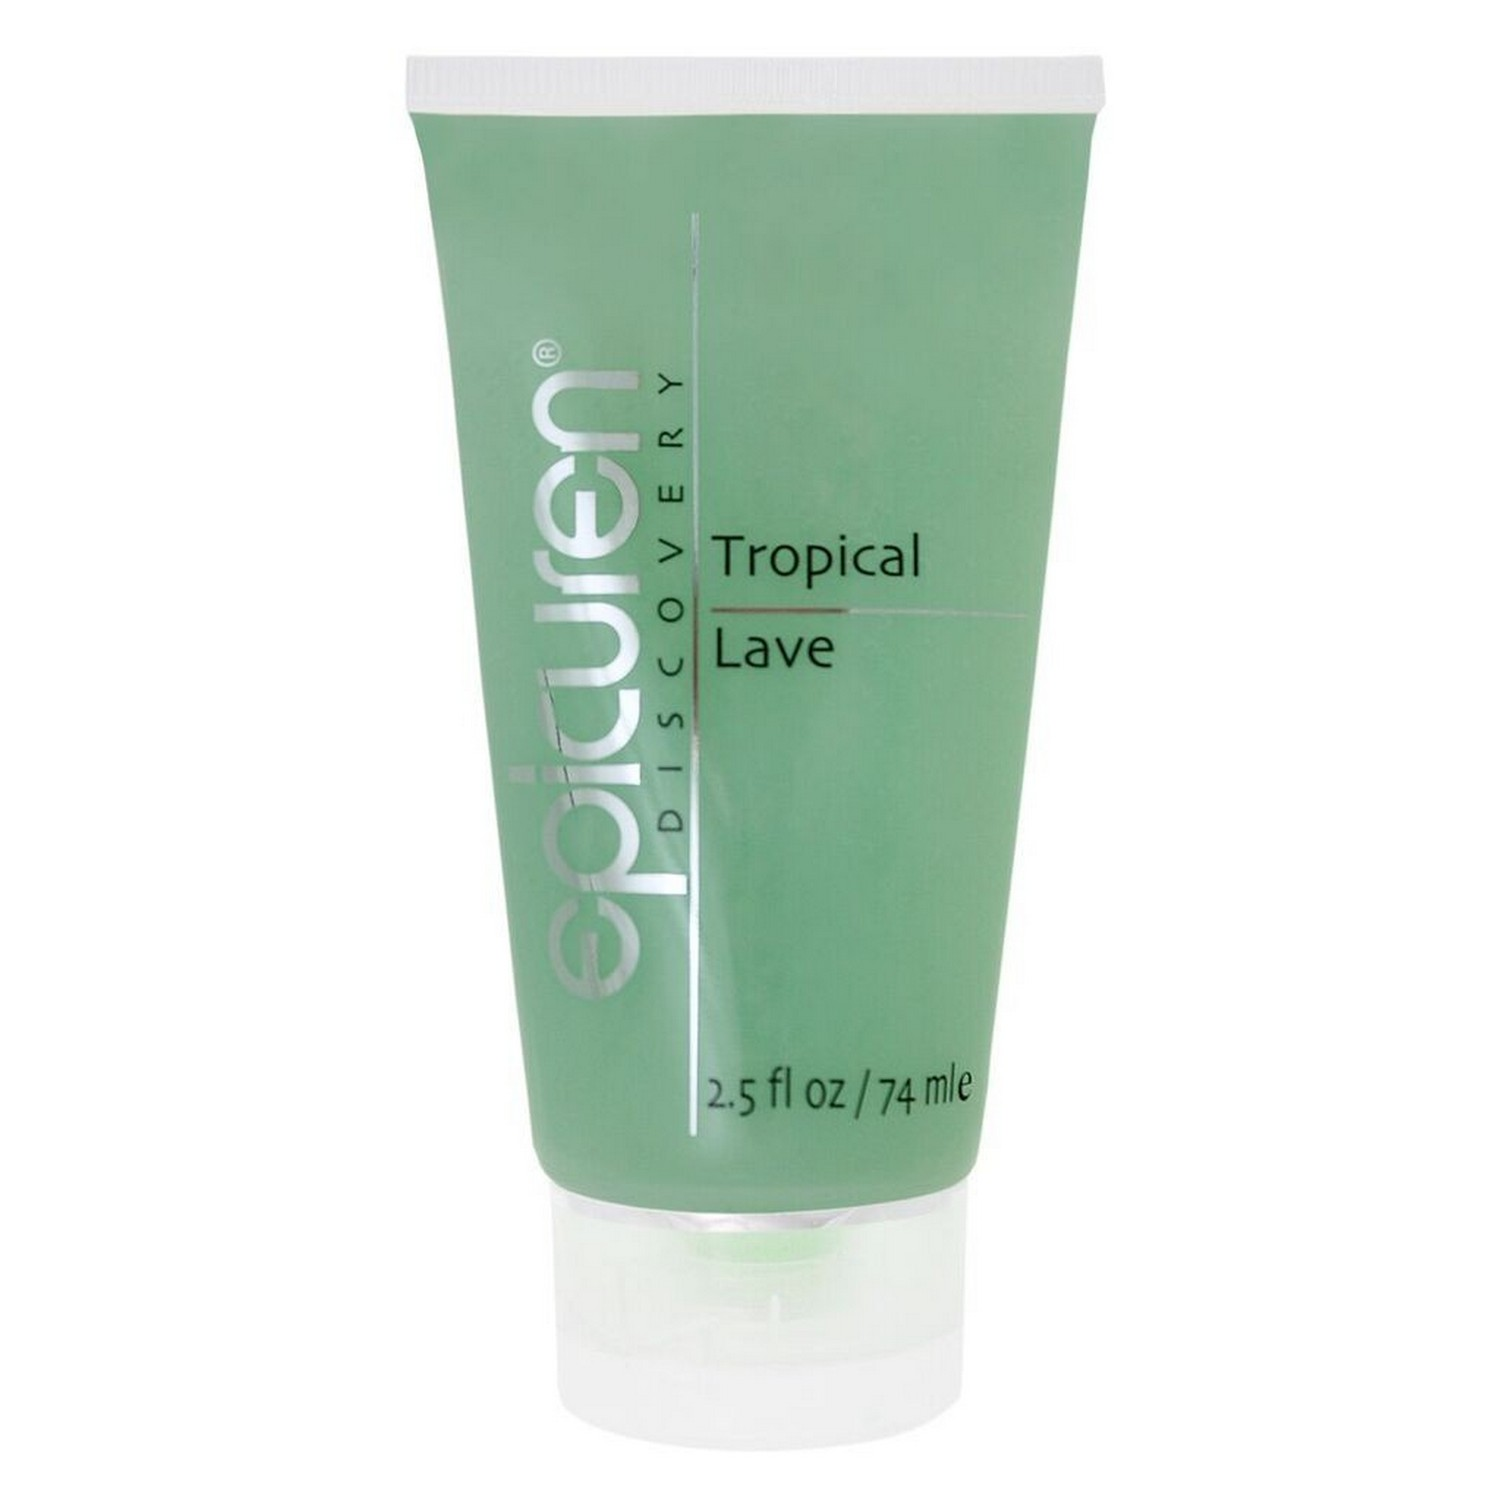 epicuren Discovery Tropical Lave Body Cleanser (16.0 fl oz / 500 ml)